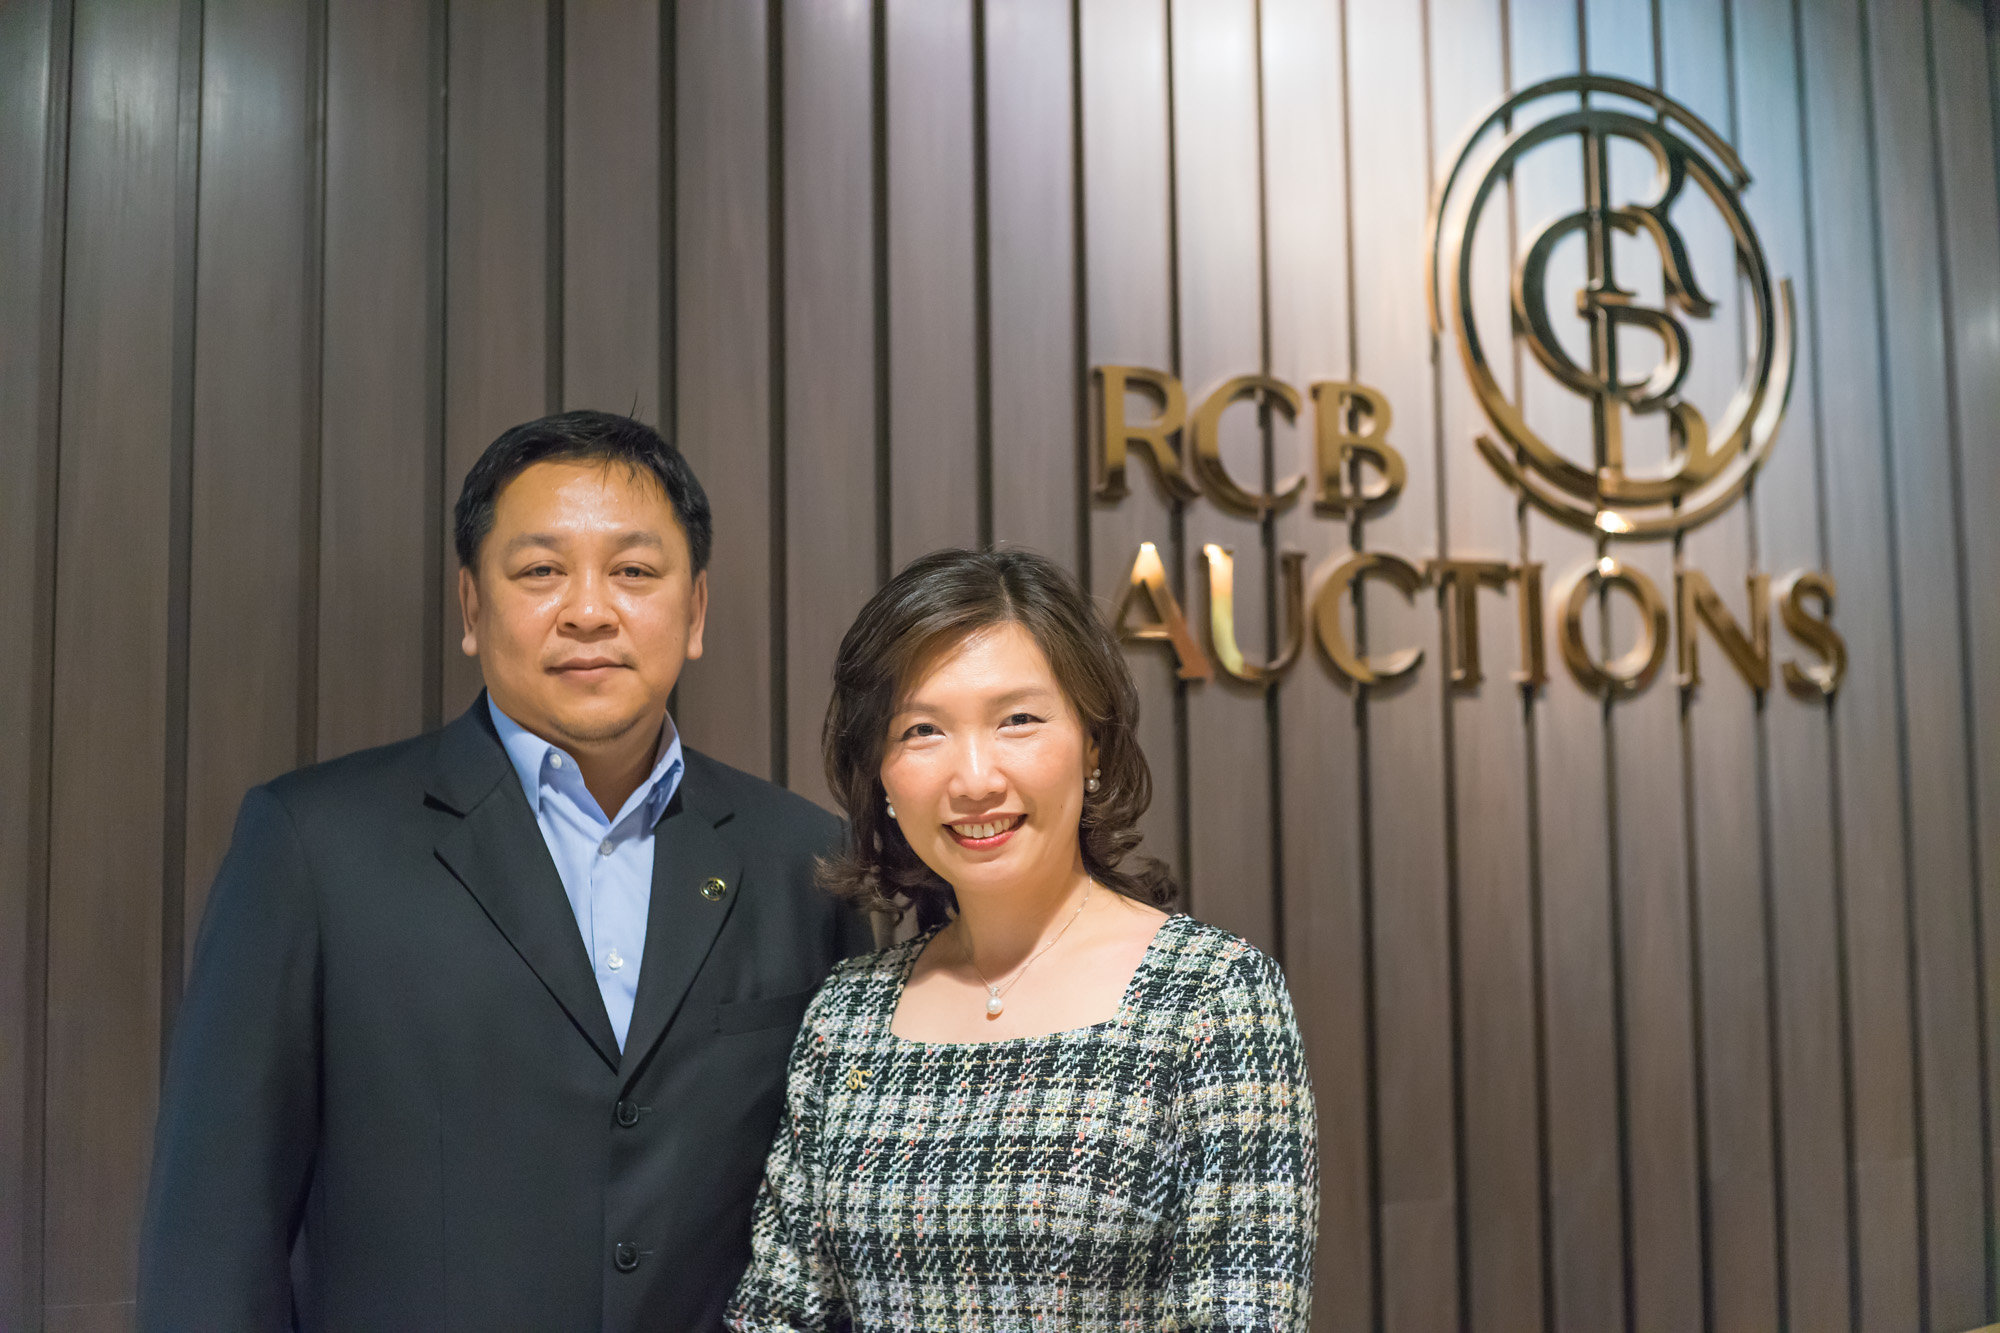 visionthai-event-rcb-auctions-010